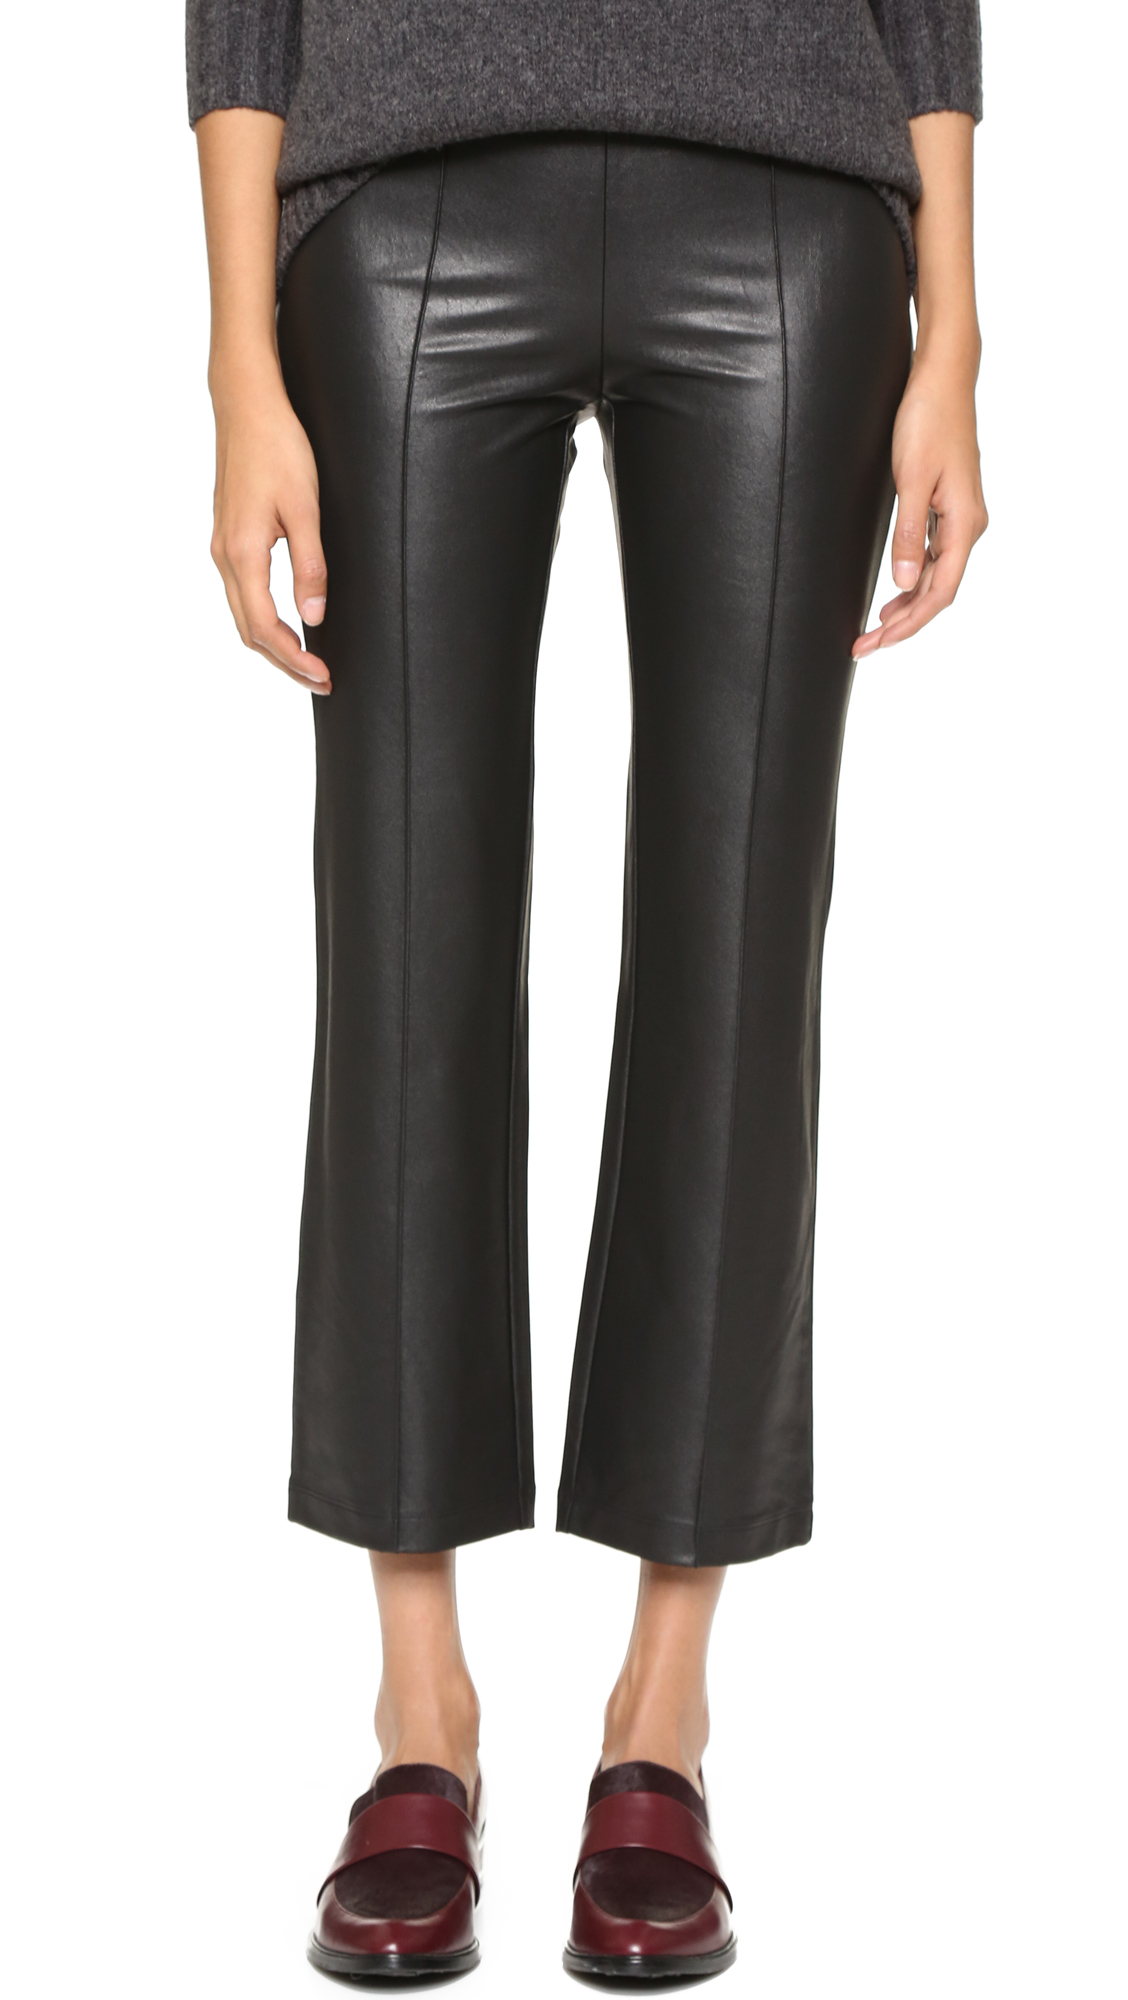 32f5965cdfab1 BCBGMAXAZRIA Faux Leather Cropped Pants in Black - Lyst